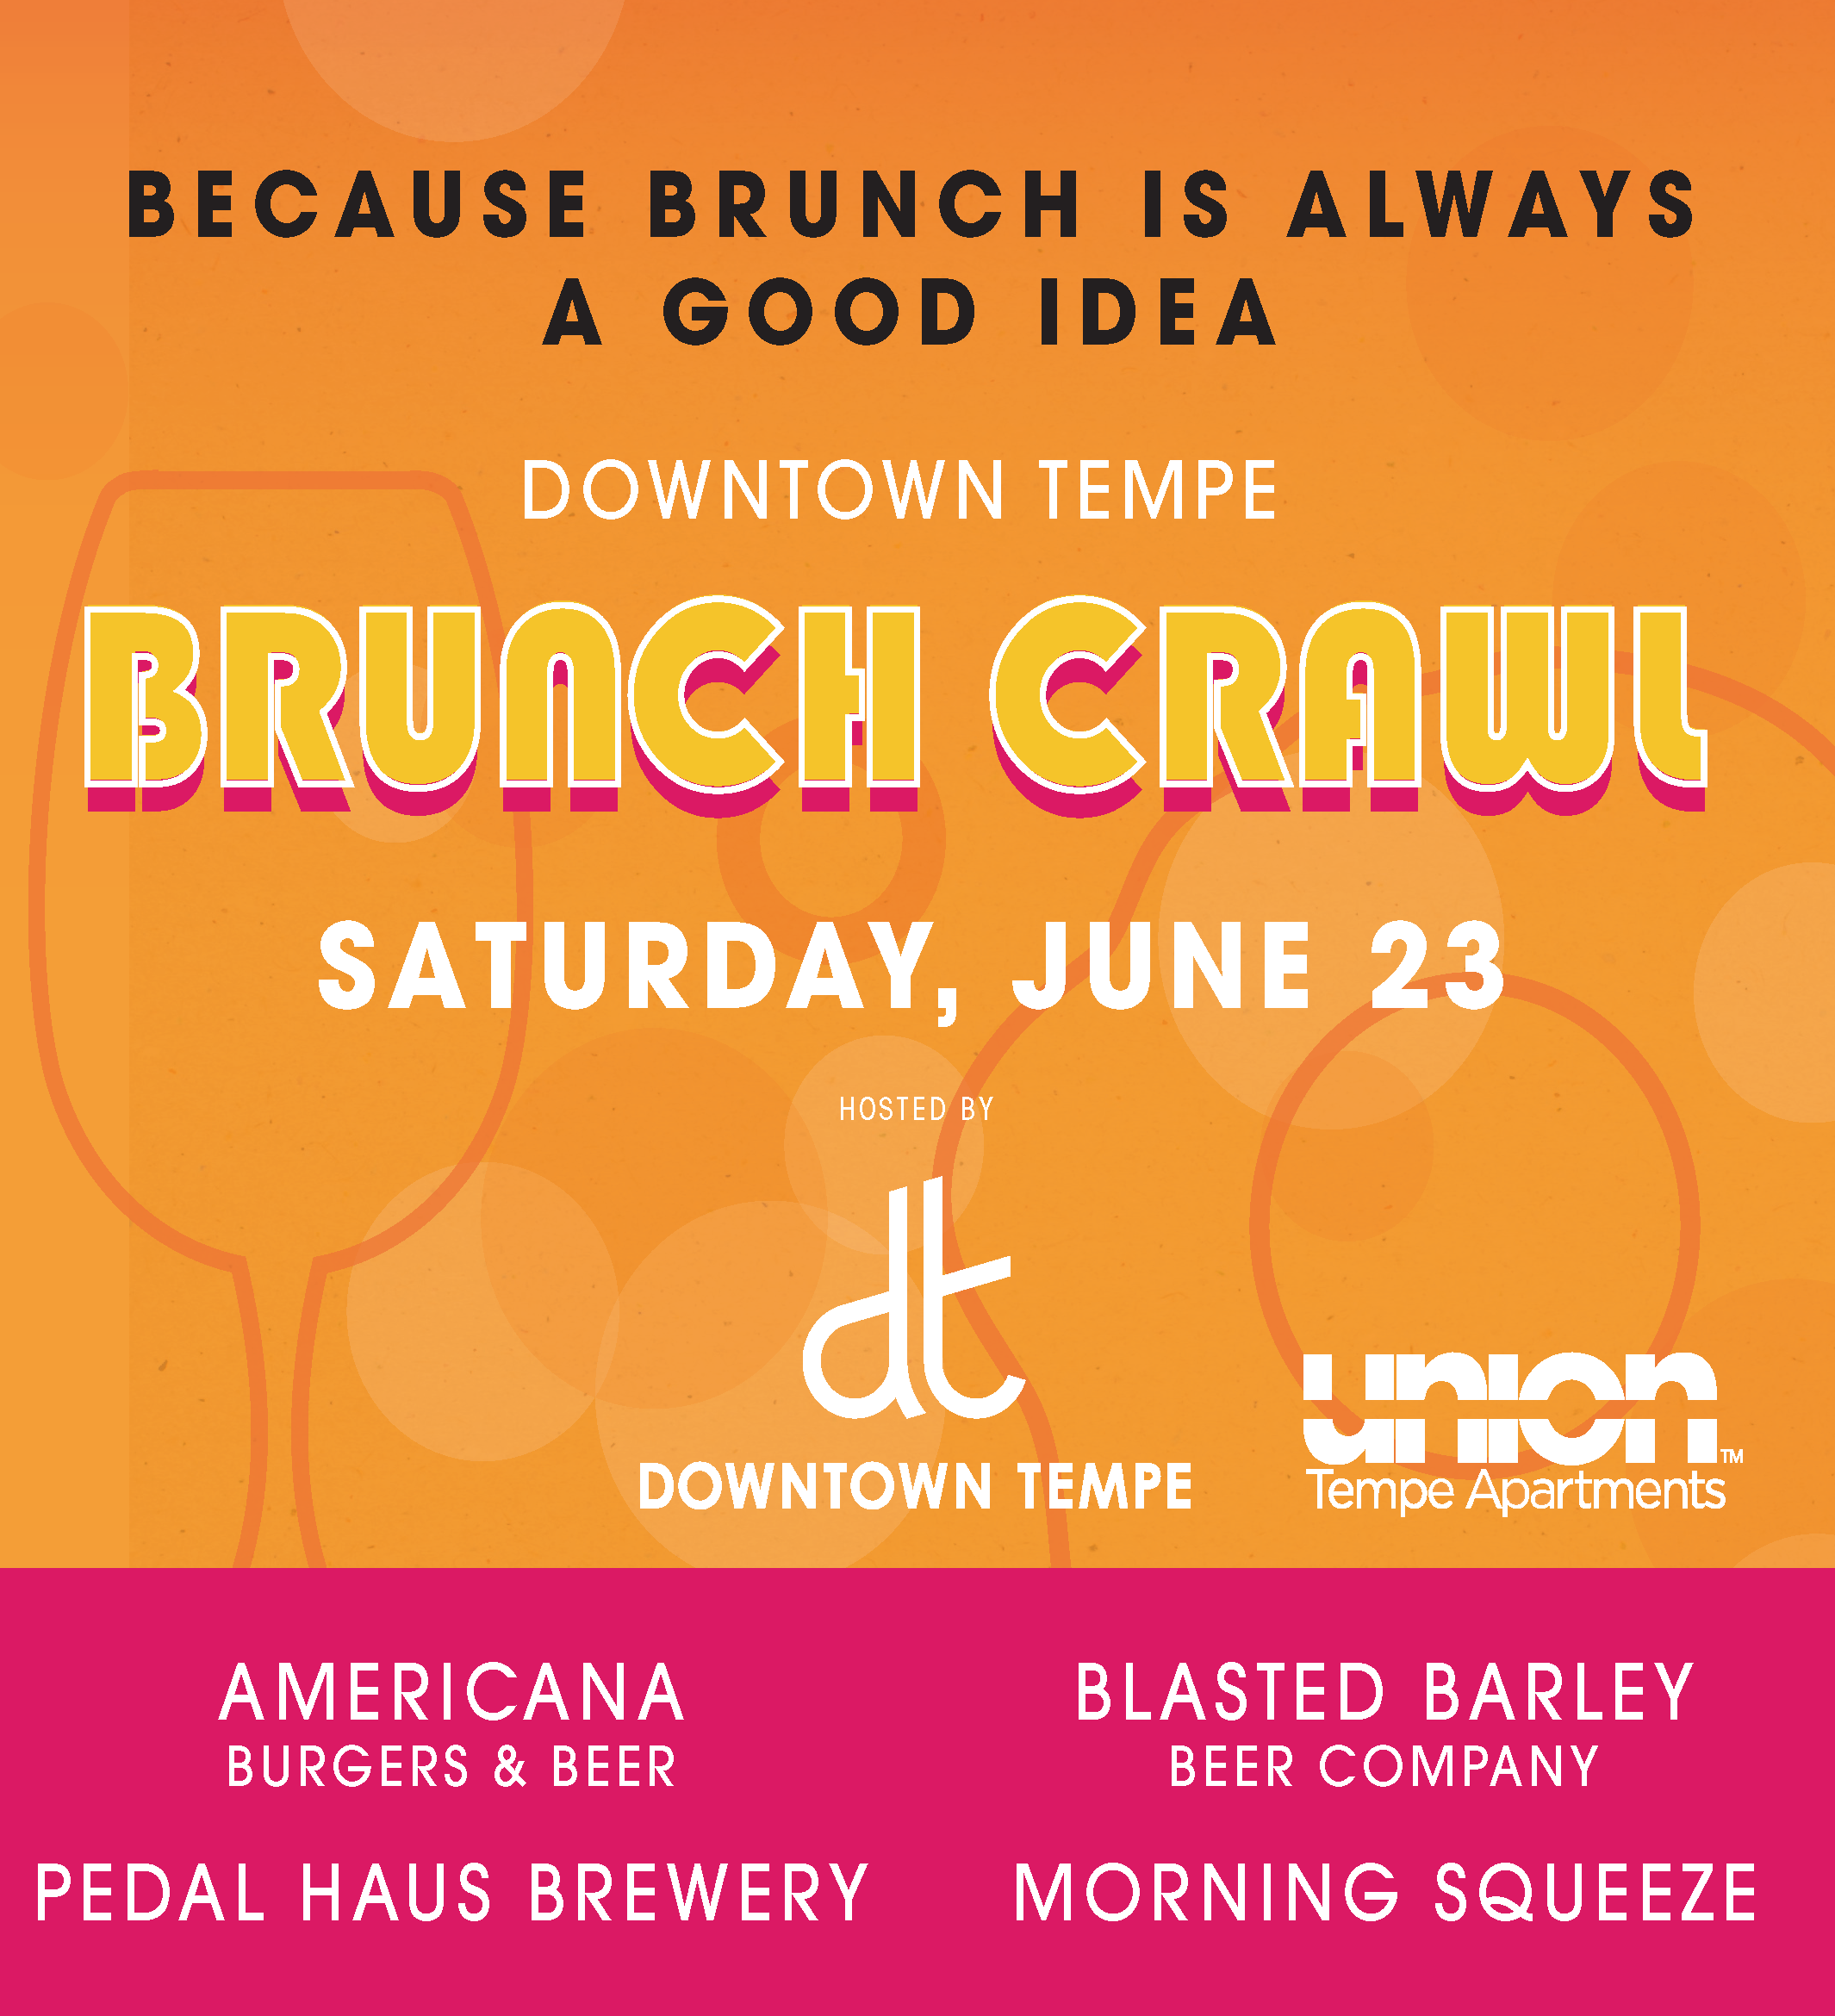 DTA_Summer_Brunch_Crawl_2018_Insta.png